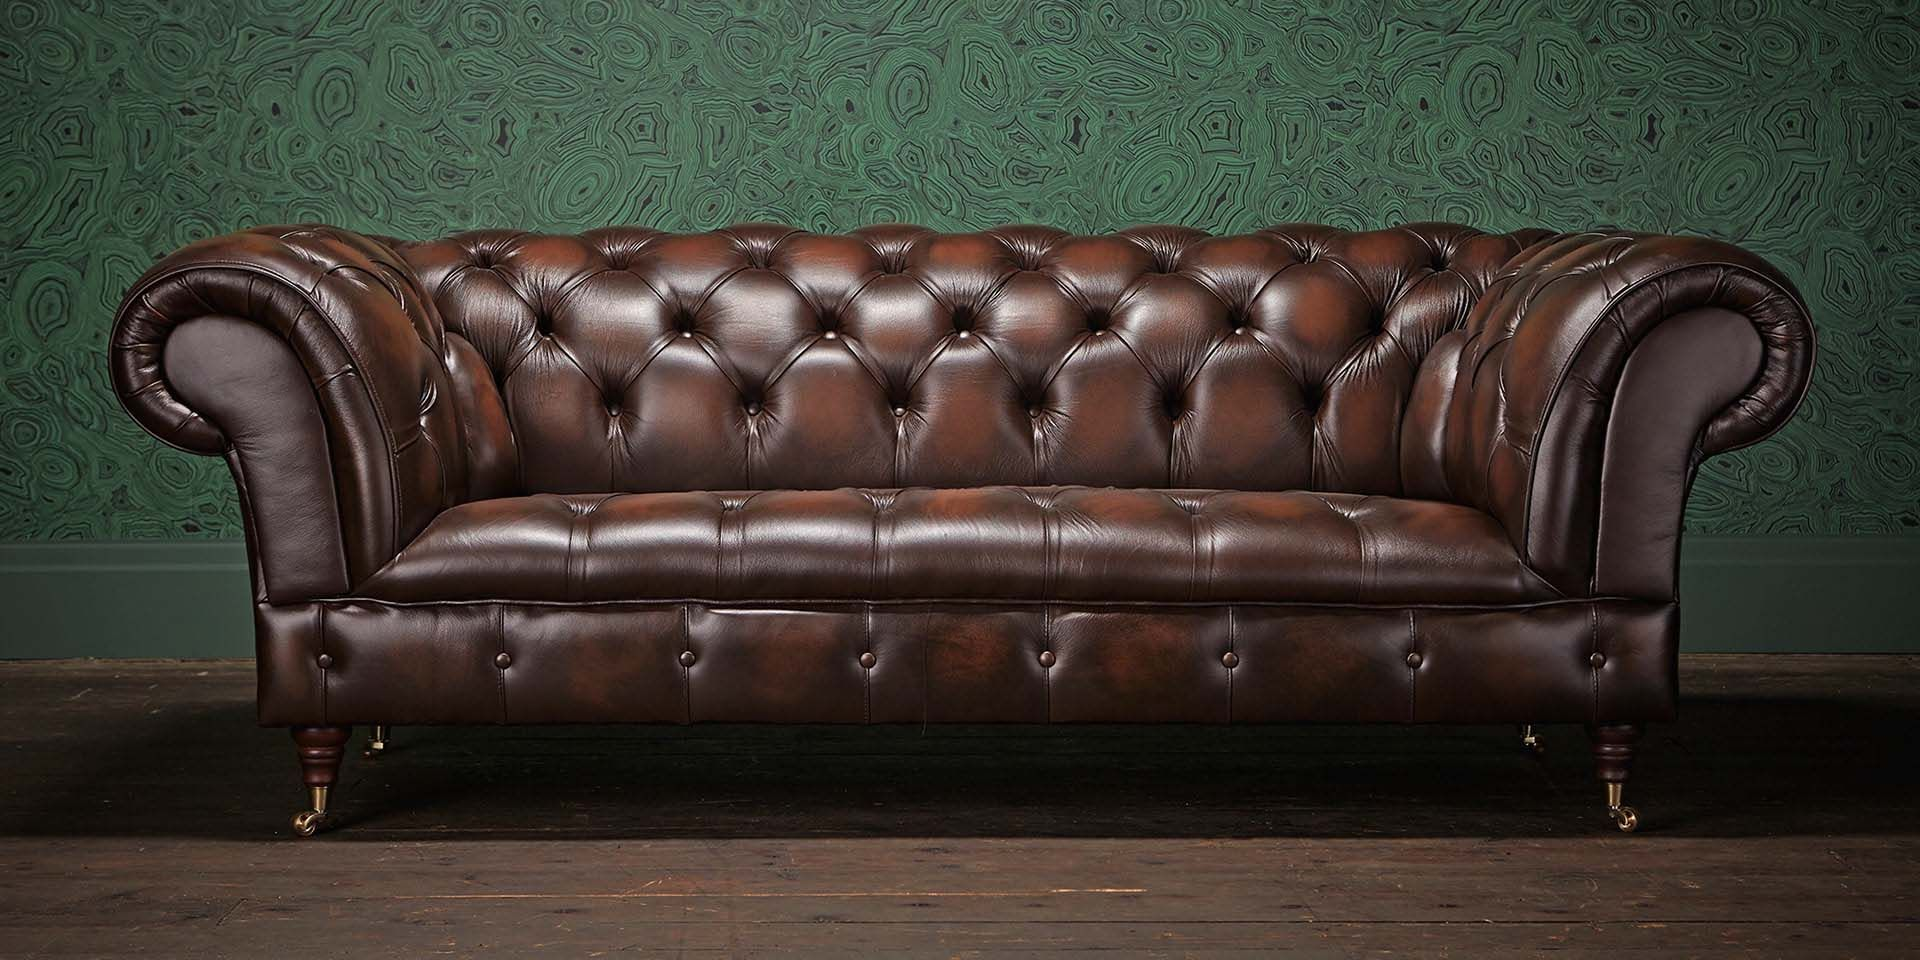 Get Inexpensive Chesterfield Sofa With Style And Quality Just On Sales Chesterfield Sofa Chesterfield Furniture Brown Chesterfield Sofa